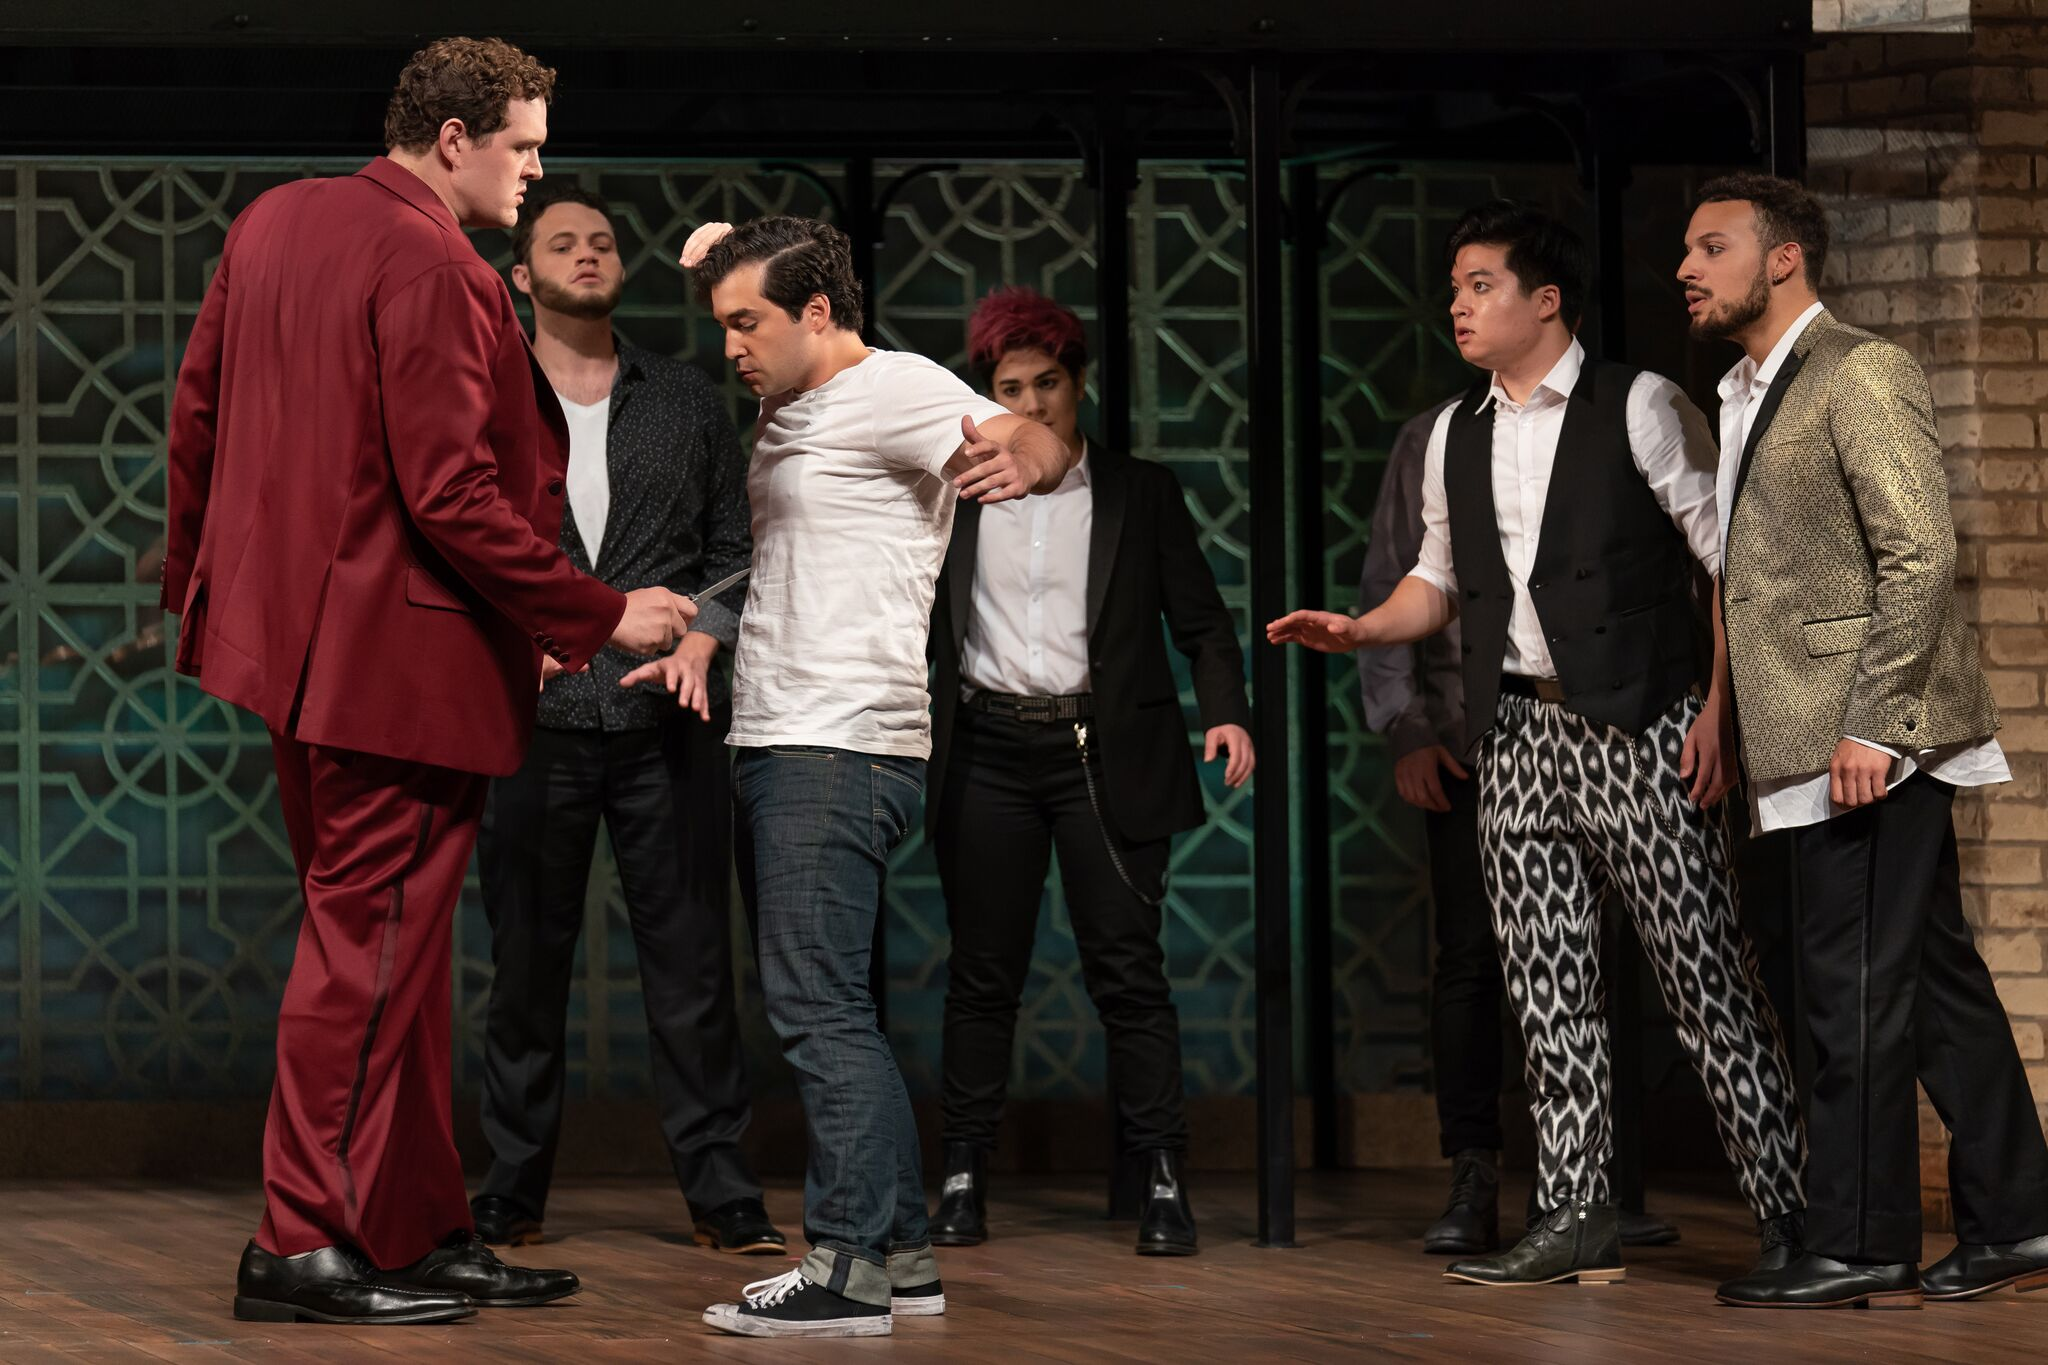 Tybalt (Richard Trey Smagur) confronts Romeo (Alexander McKissick) with a knife while onlookers are, l to r, Mercutio (Thomas Glass), Stephano (Amy Rosen), Duke Kim, and Cory McGee. Photo by Scott Suchman; courtesy of Wolf Trap Opera.